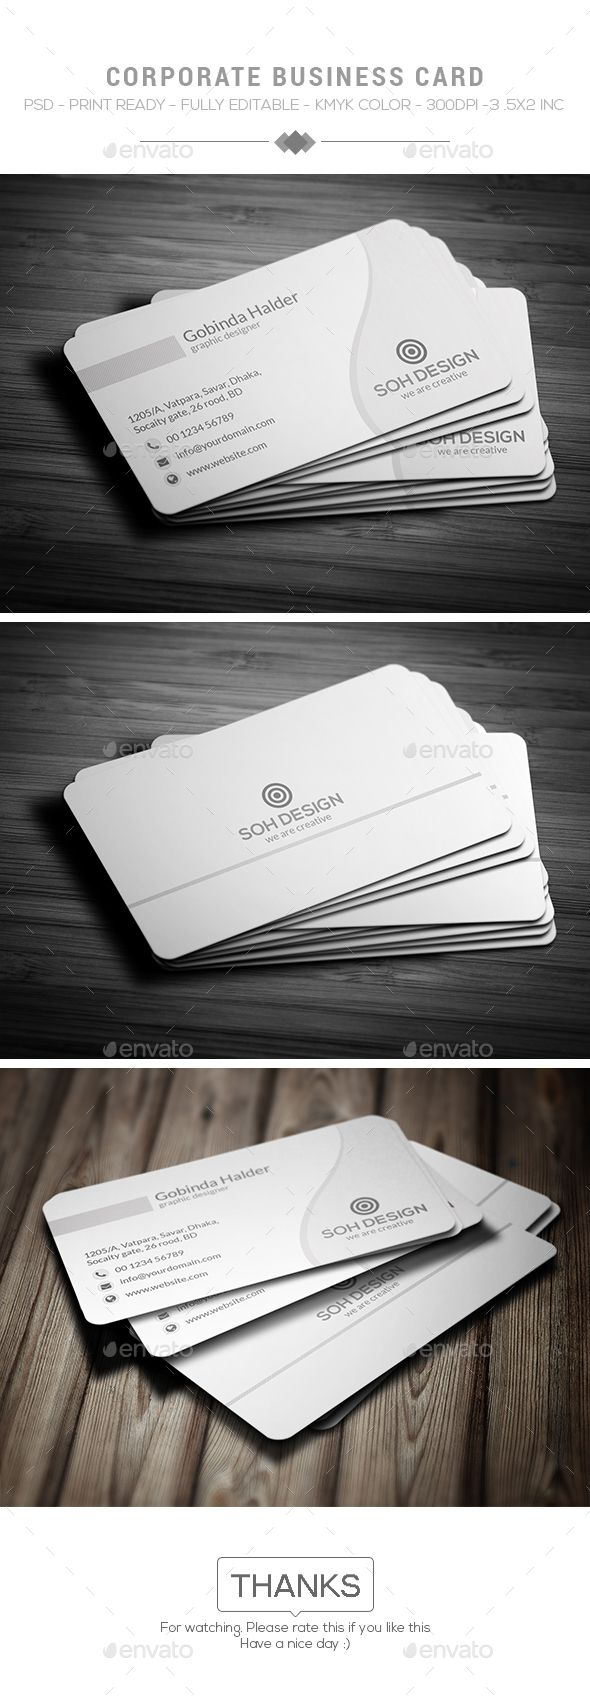 194 Best Business Cards Templates Images On Pinterest Corporate